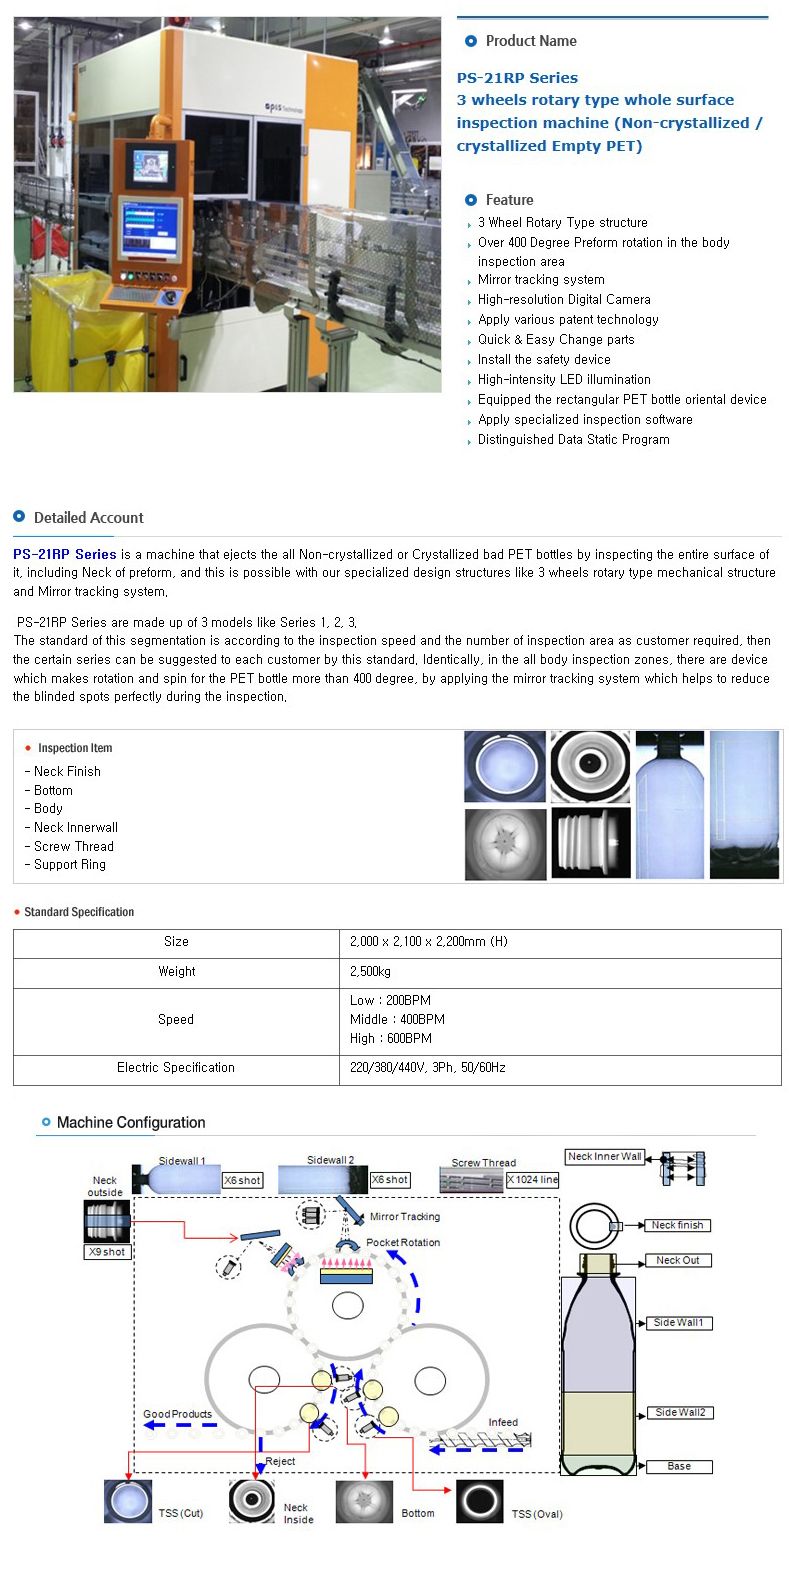 P&S TECHNOLOGY 3 wheels rotary type whole surface inspection machine PS-21RP Series